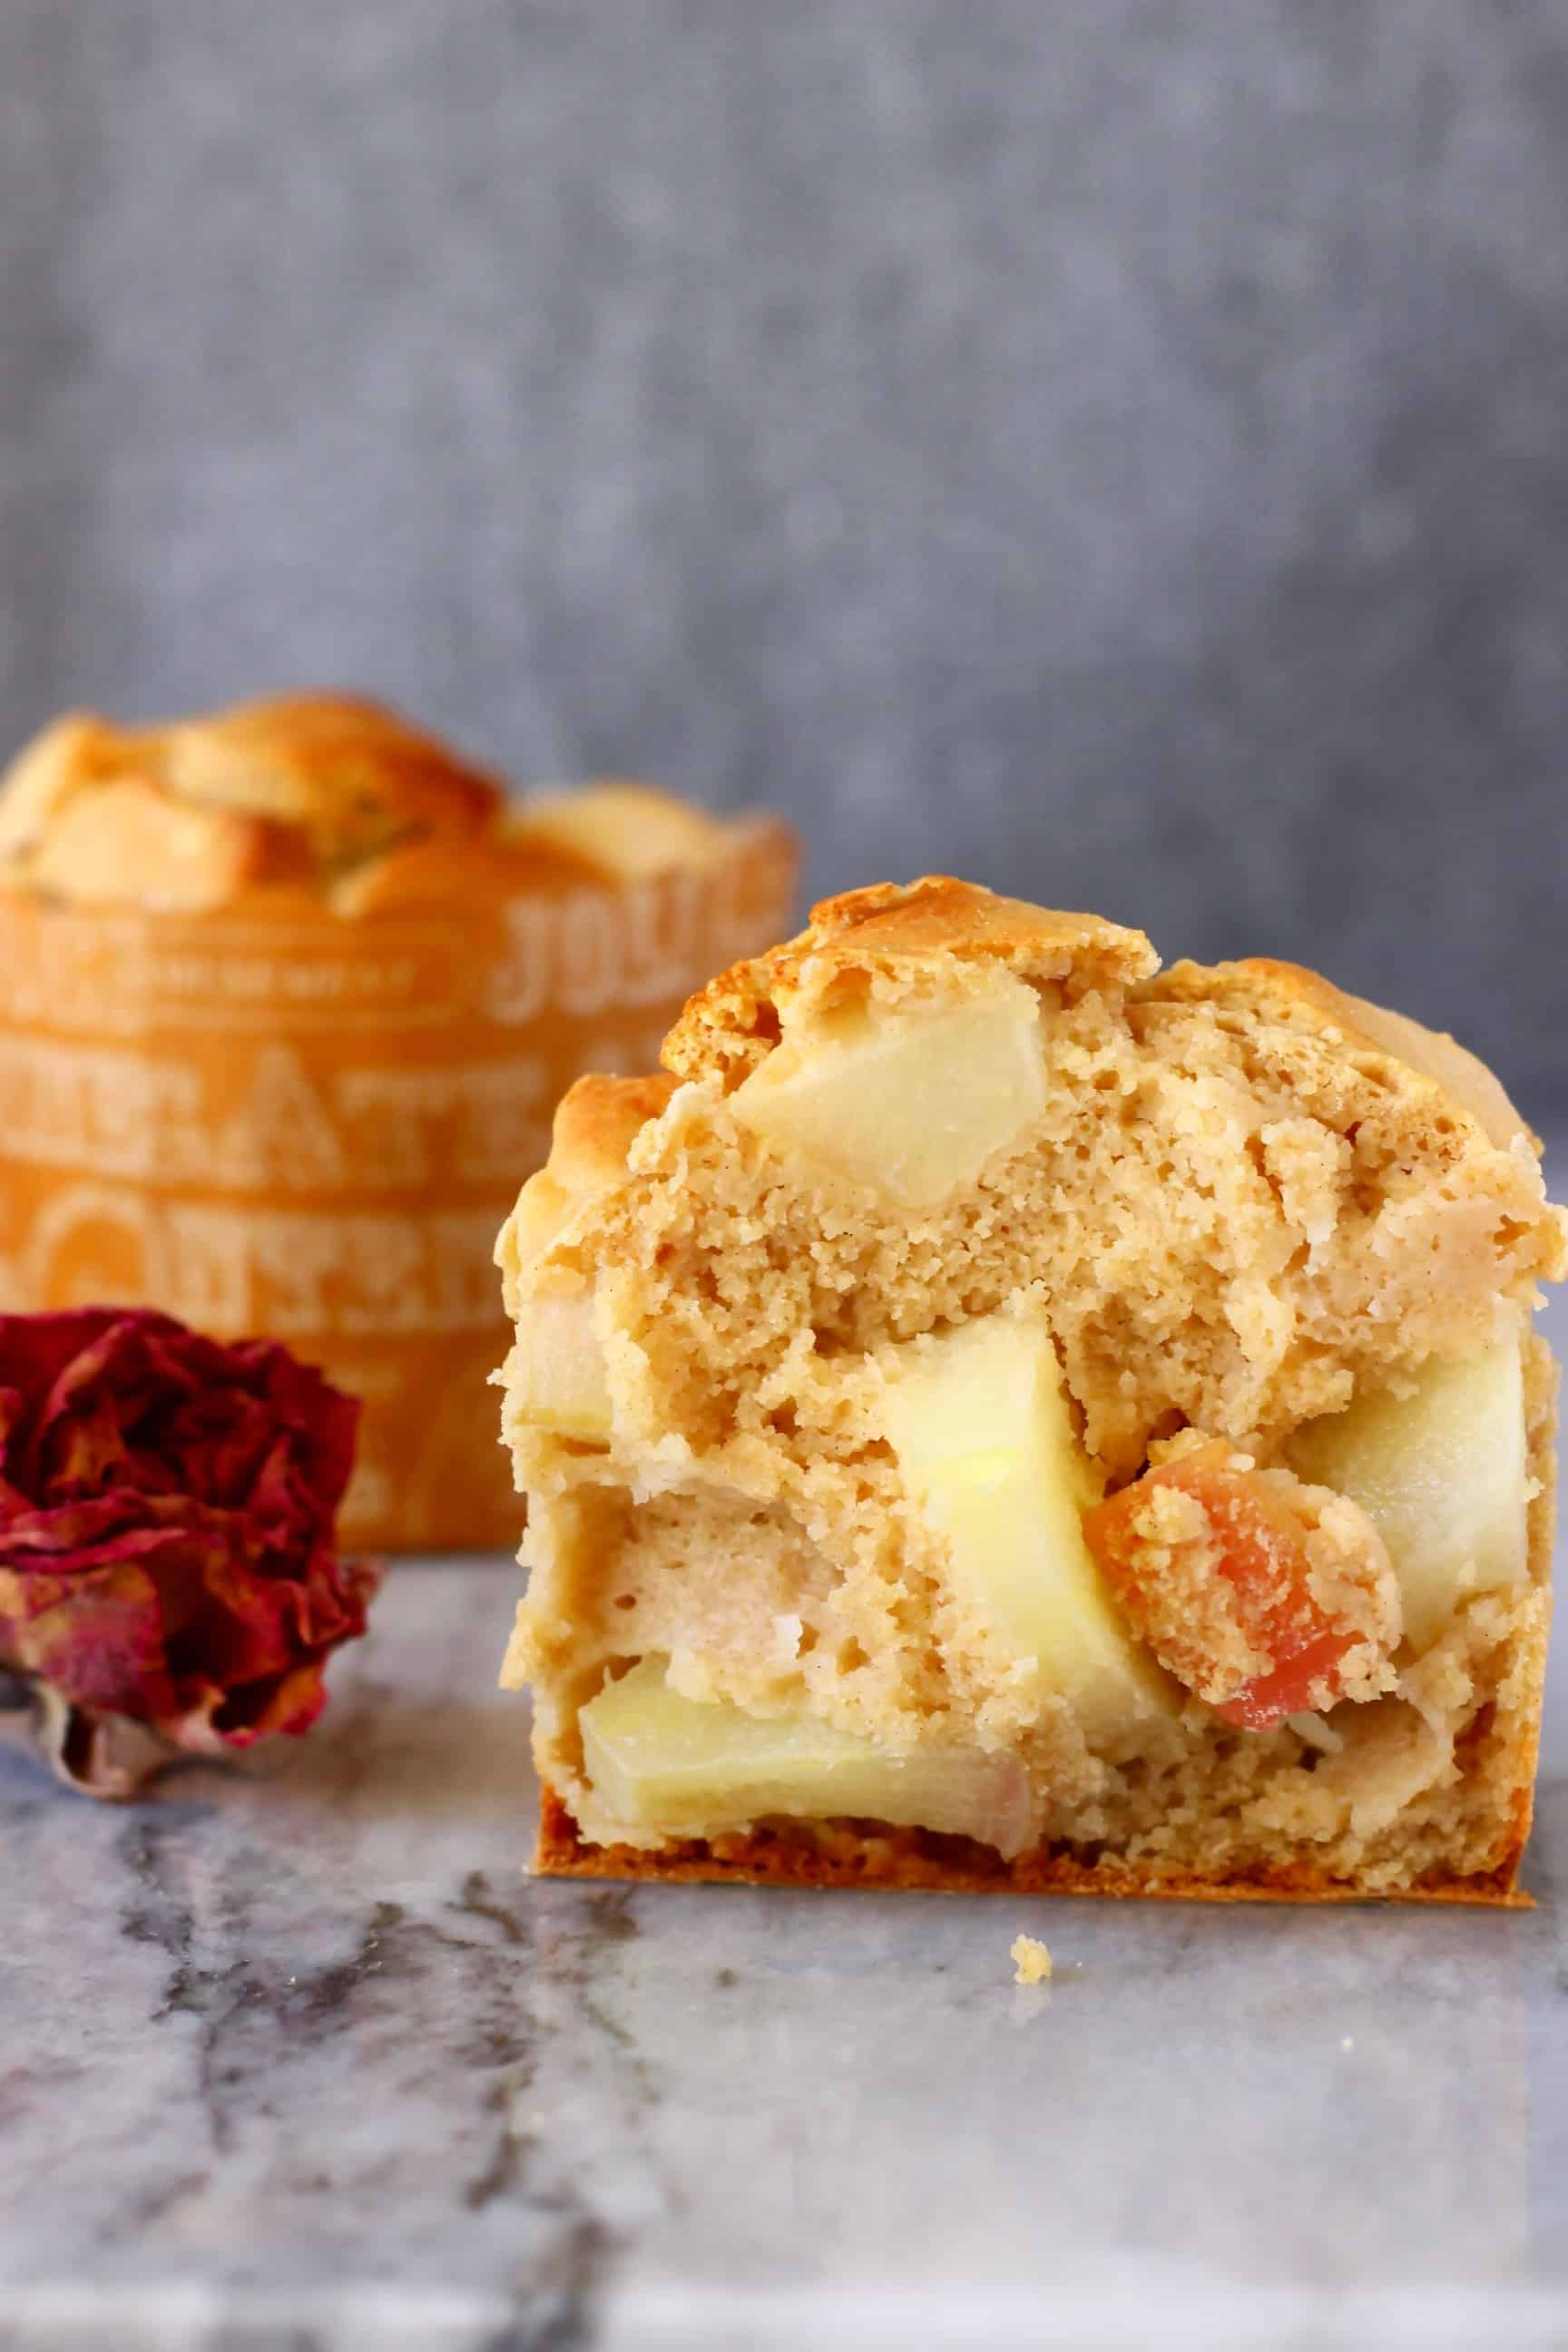 Half a muffin with apples and another muffin on a marble slab against a grey background